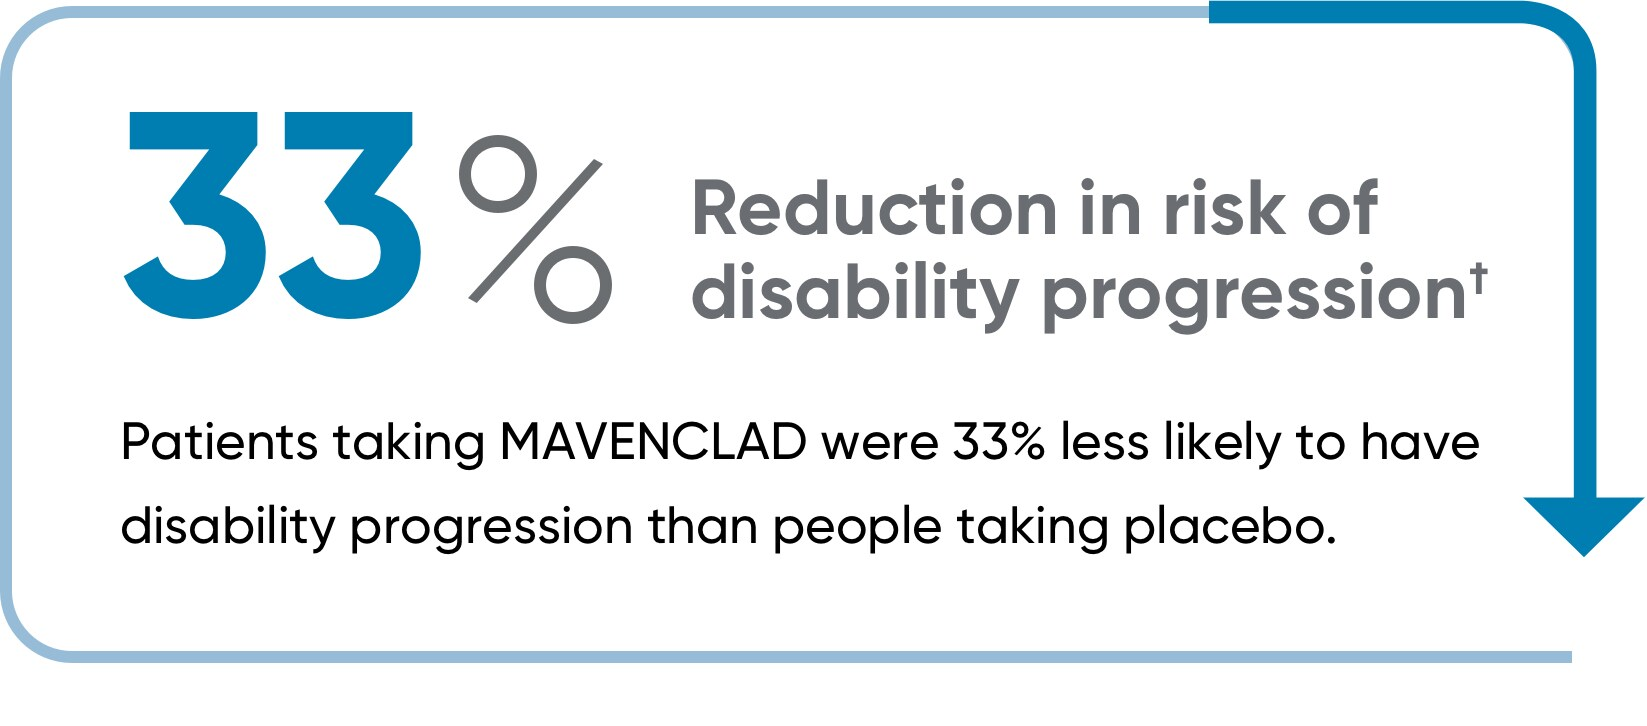 MAVENCLAD® reduced the risk of disability progression by 33%